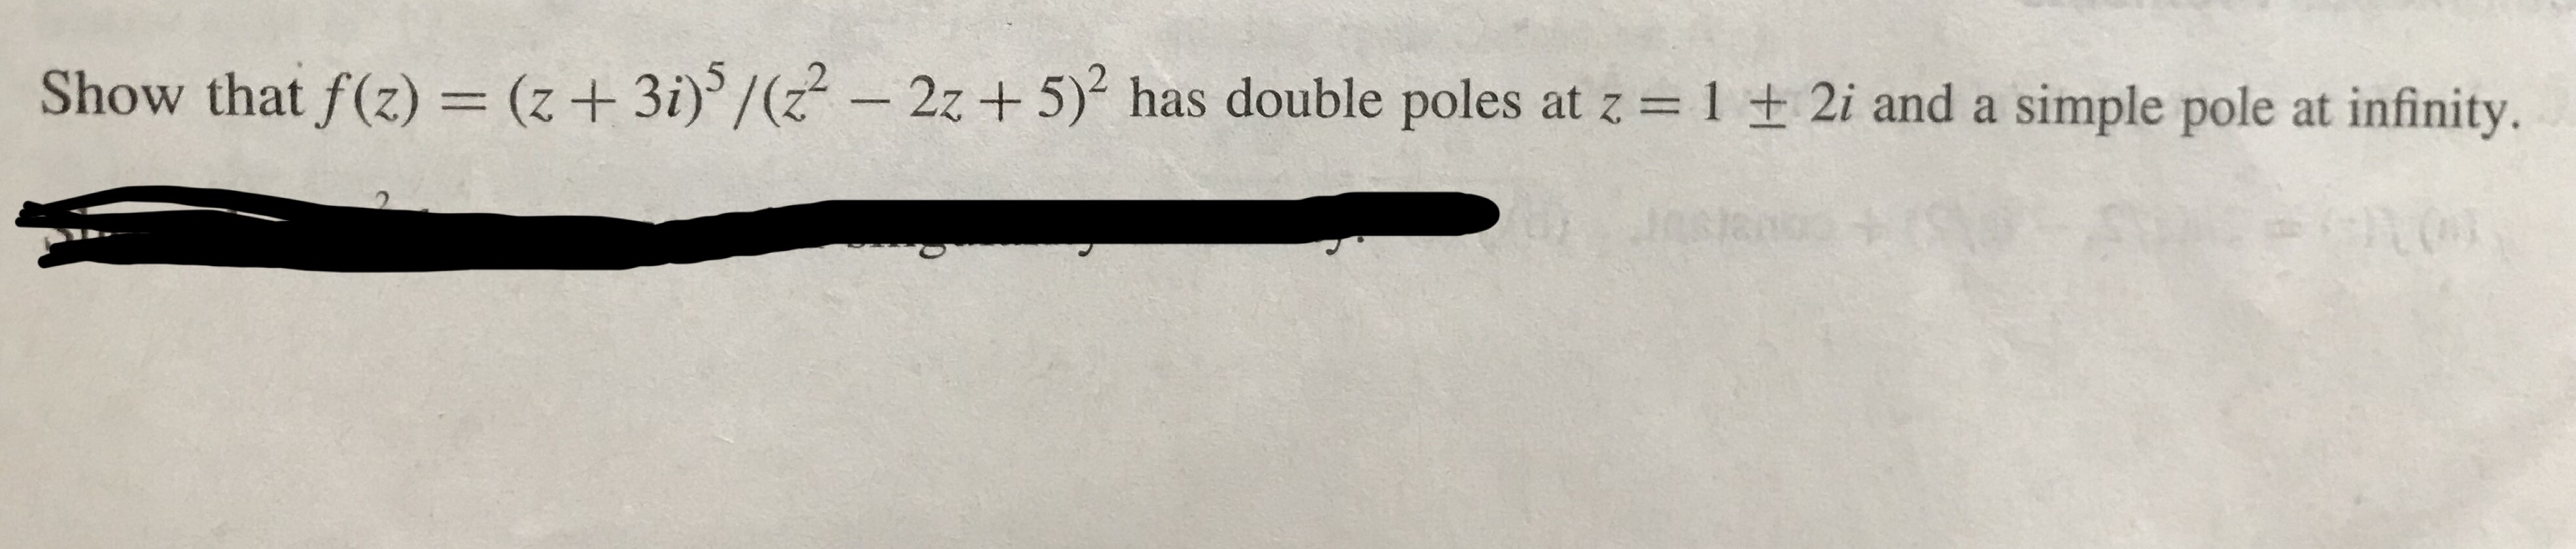 Show that f(z)(3i)/(22 -2z +5) has double poles at z 1 2i and a simple pole at infinity